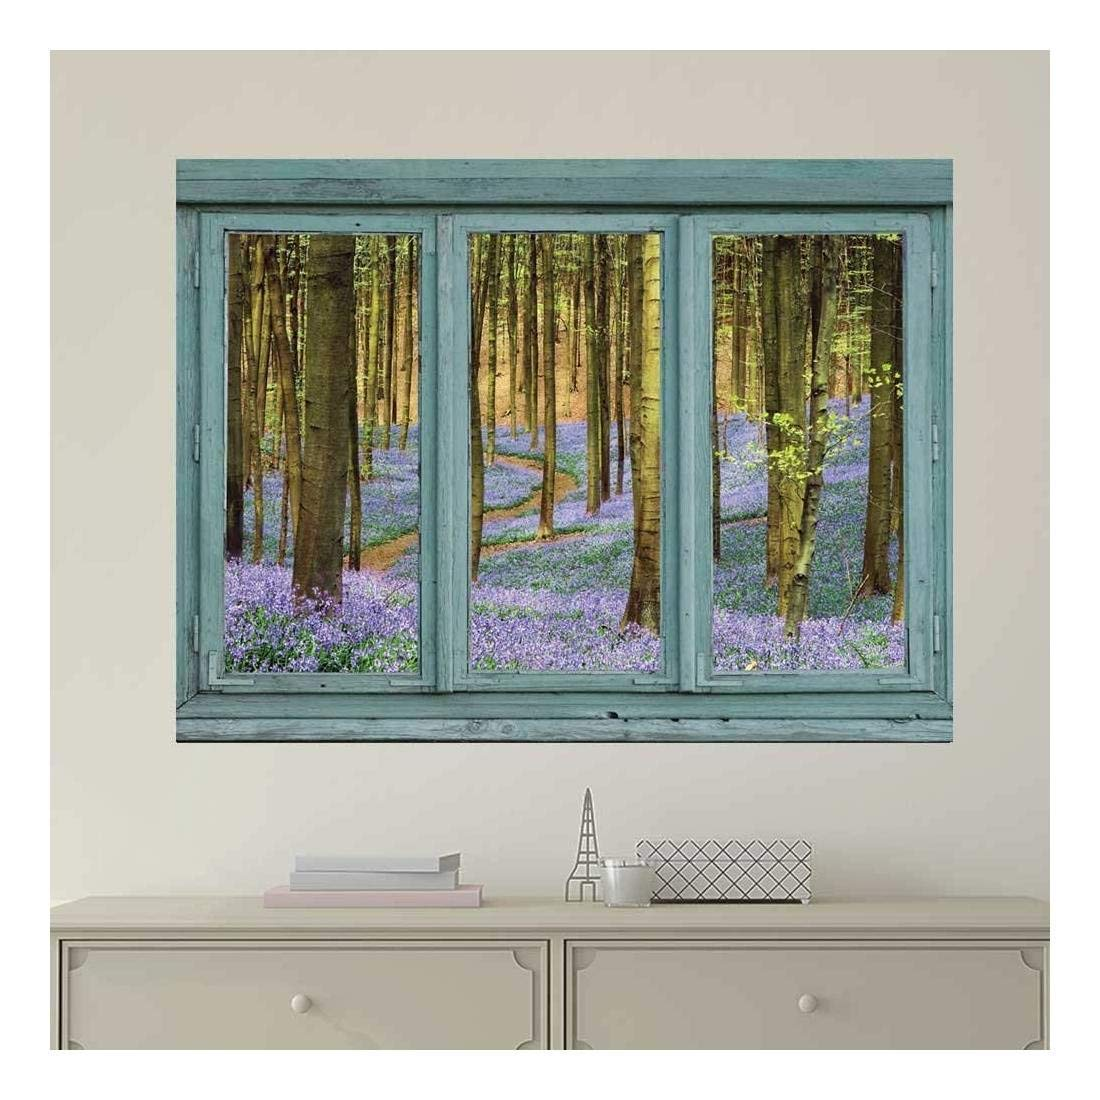 wall26 Vintage Teal Window Looking Out Into a Purple Field Forest - Wall Mural, Removable Sticker, Home Decor - 24x32 inches